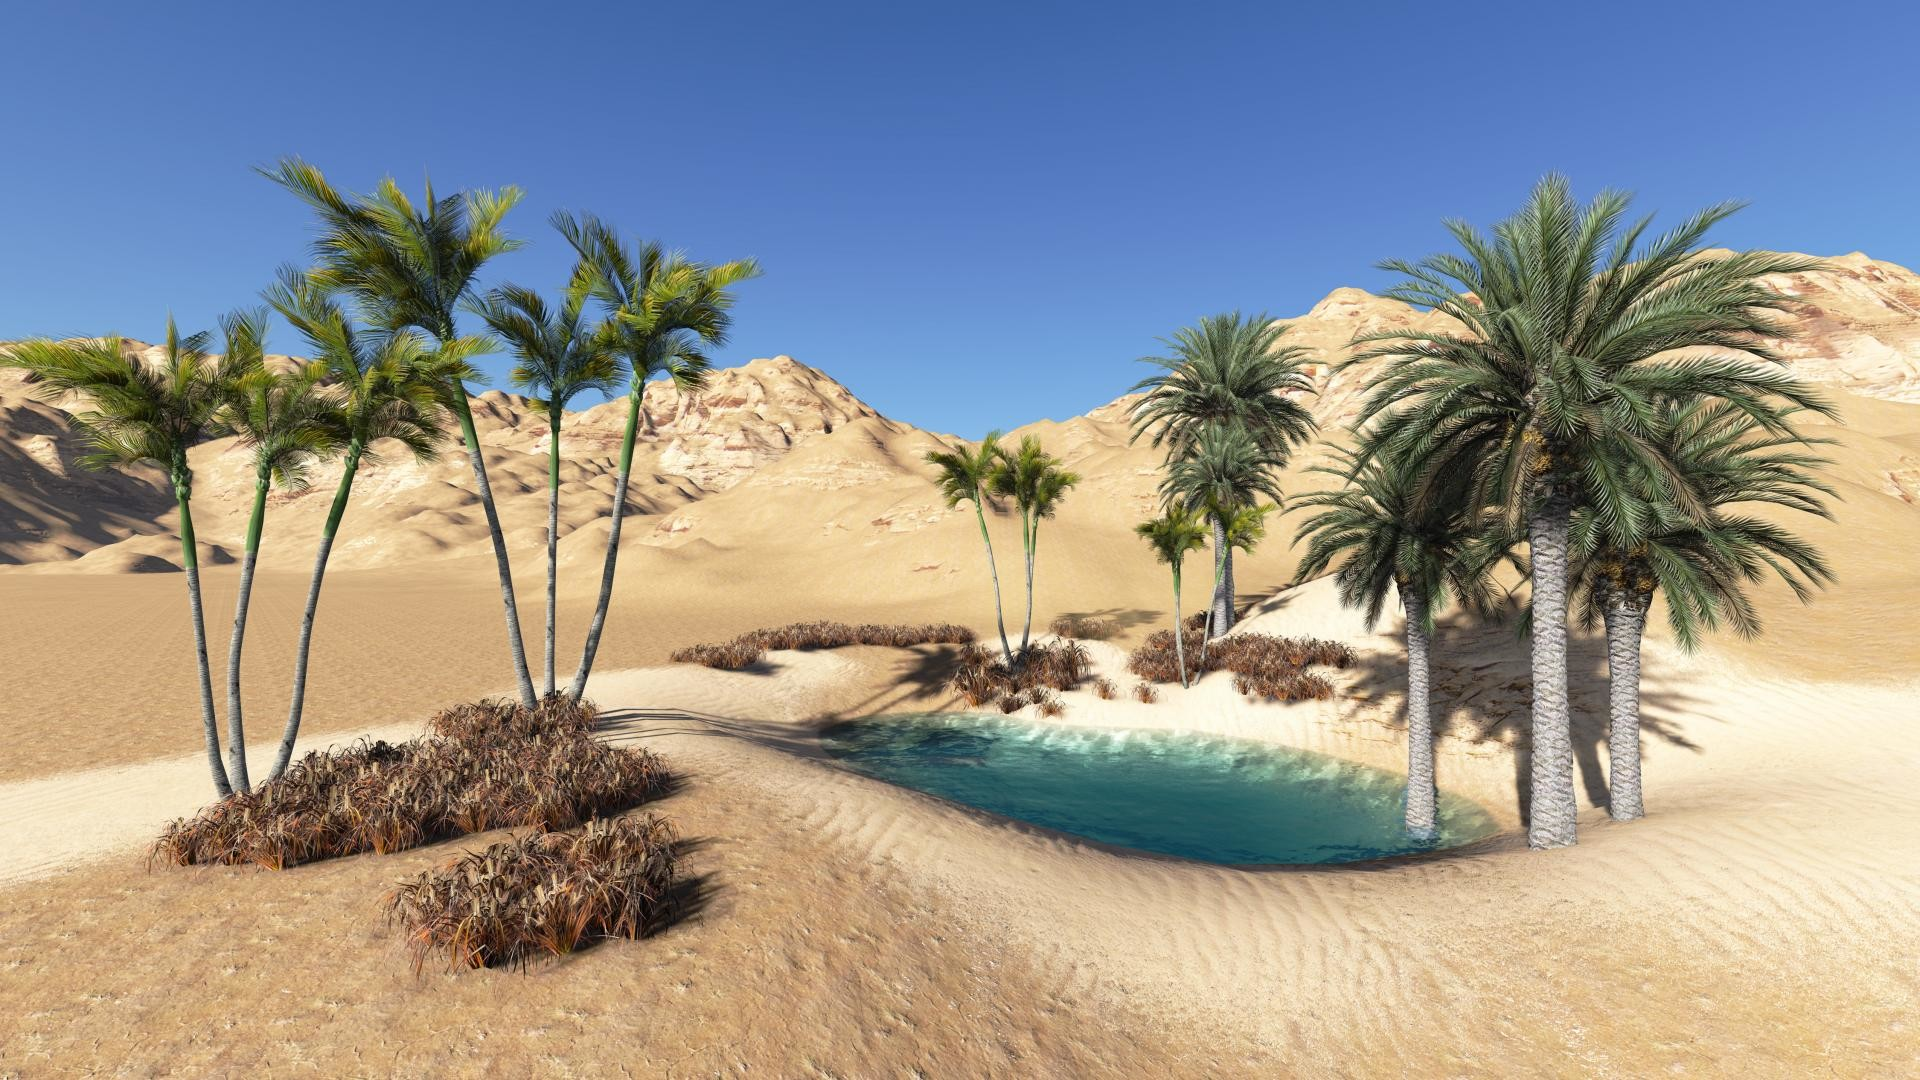 Desert Oasis Wallpaper (57+ images) Oasis Landscape Wallpaper